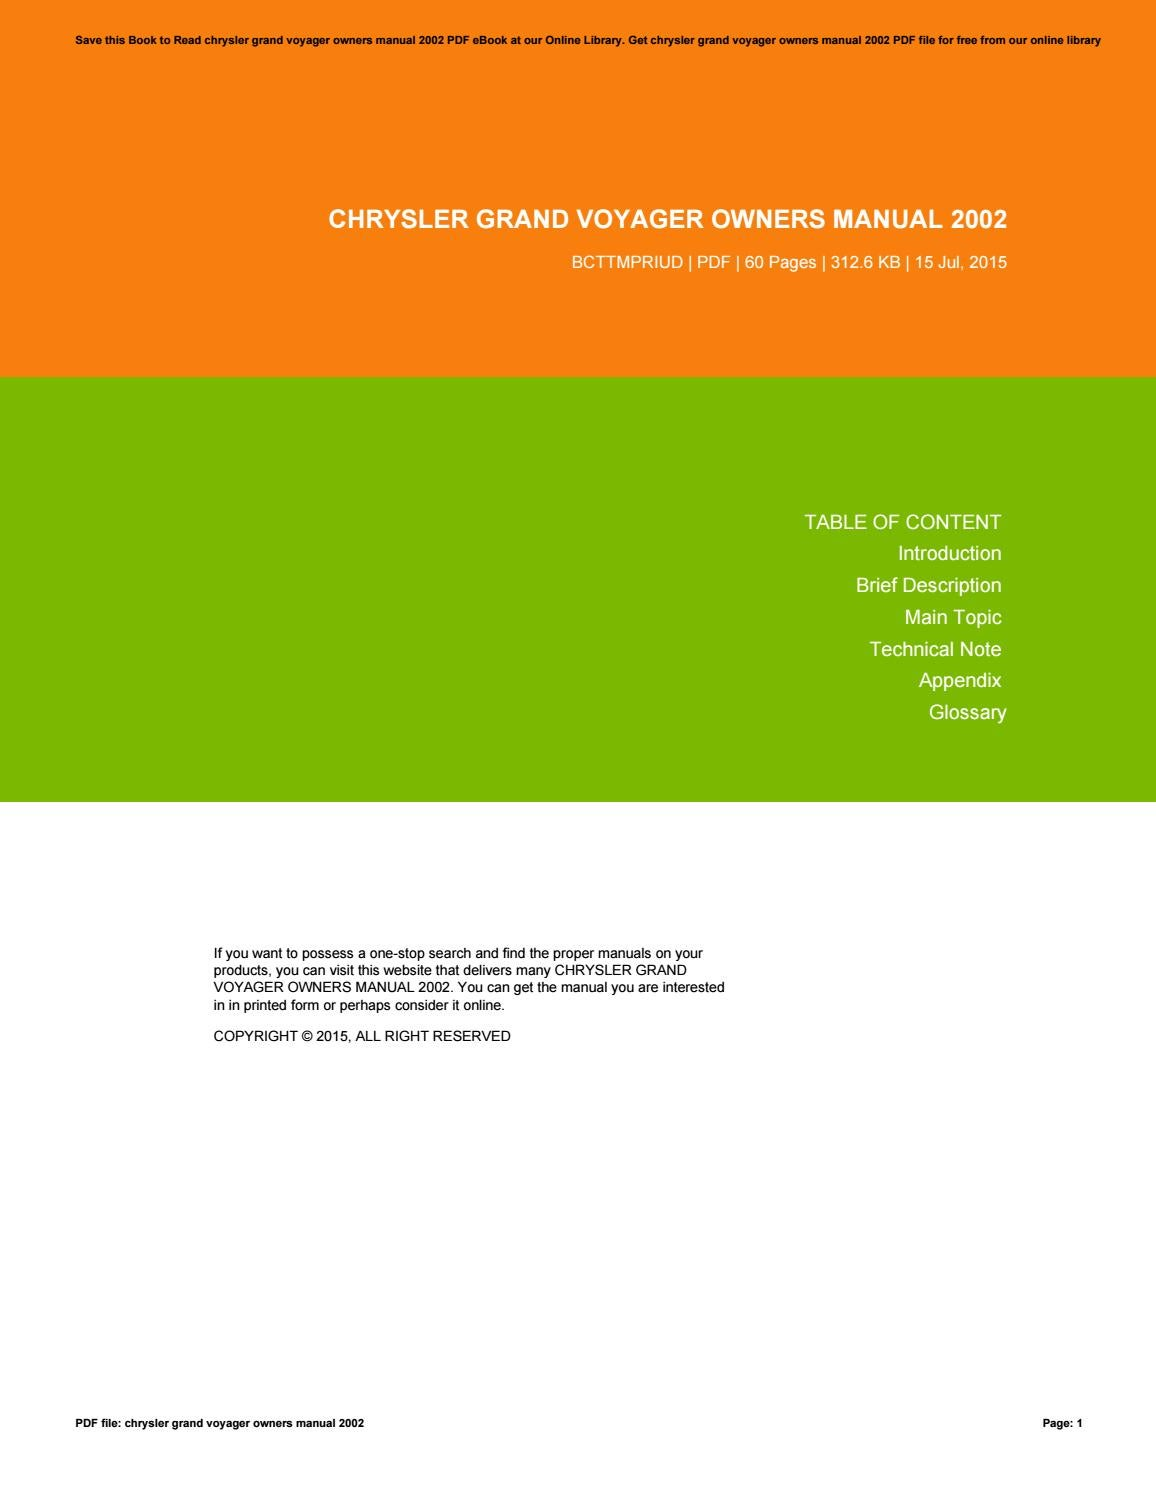 Chrysler grand voyager owners manual 2002 by RichardFox3768 - issuu